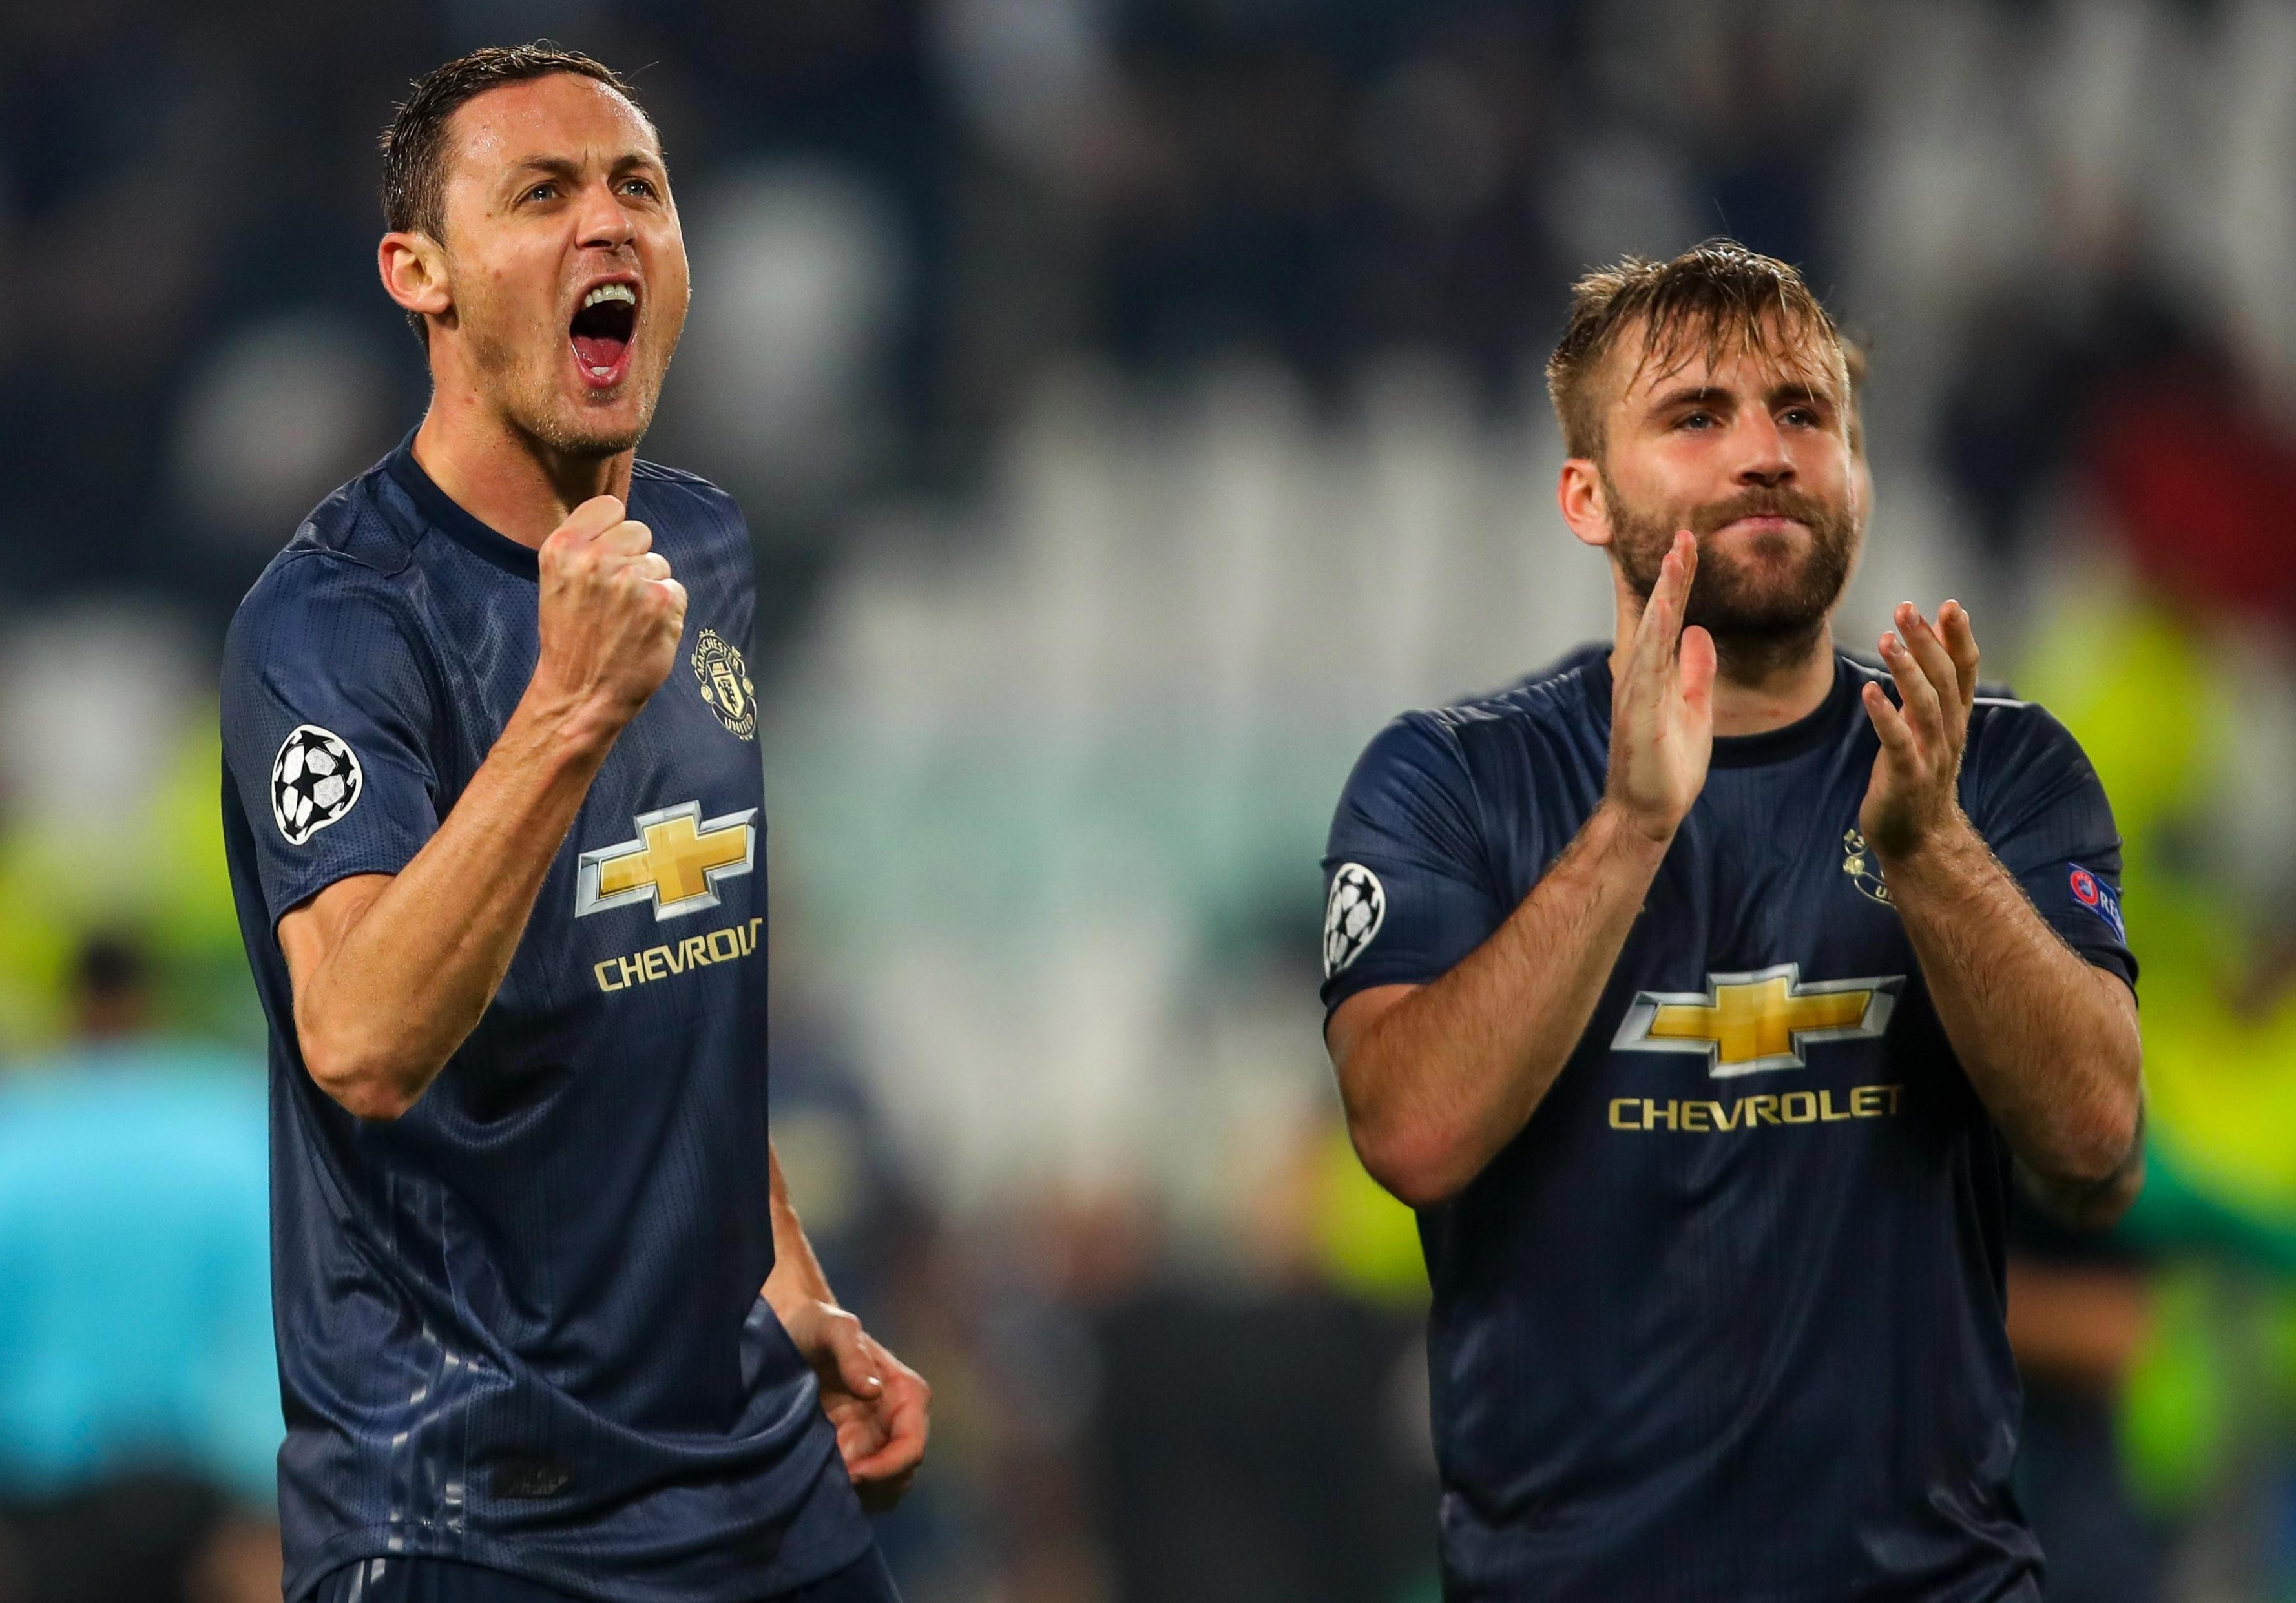 Manchester United's players should be very proud of their fighting spirit after beating Juve in their own home